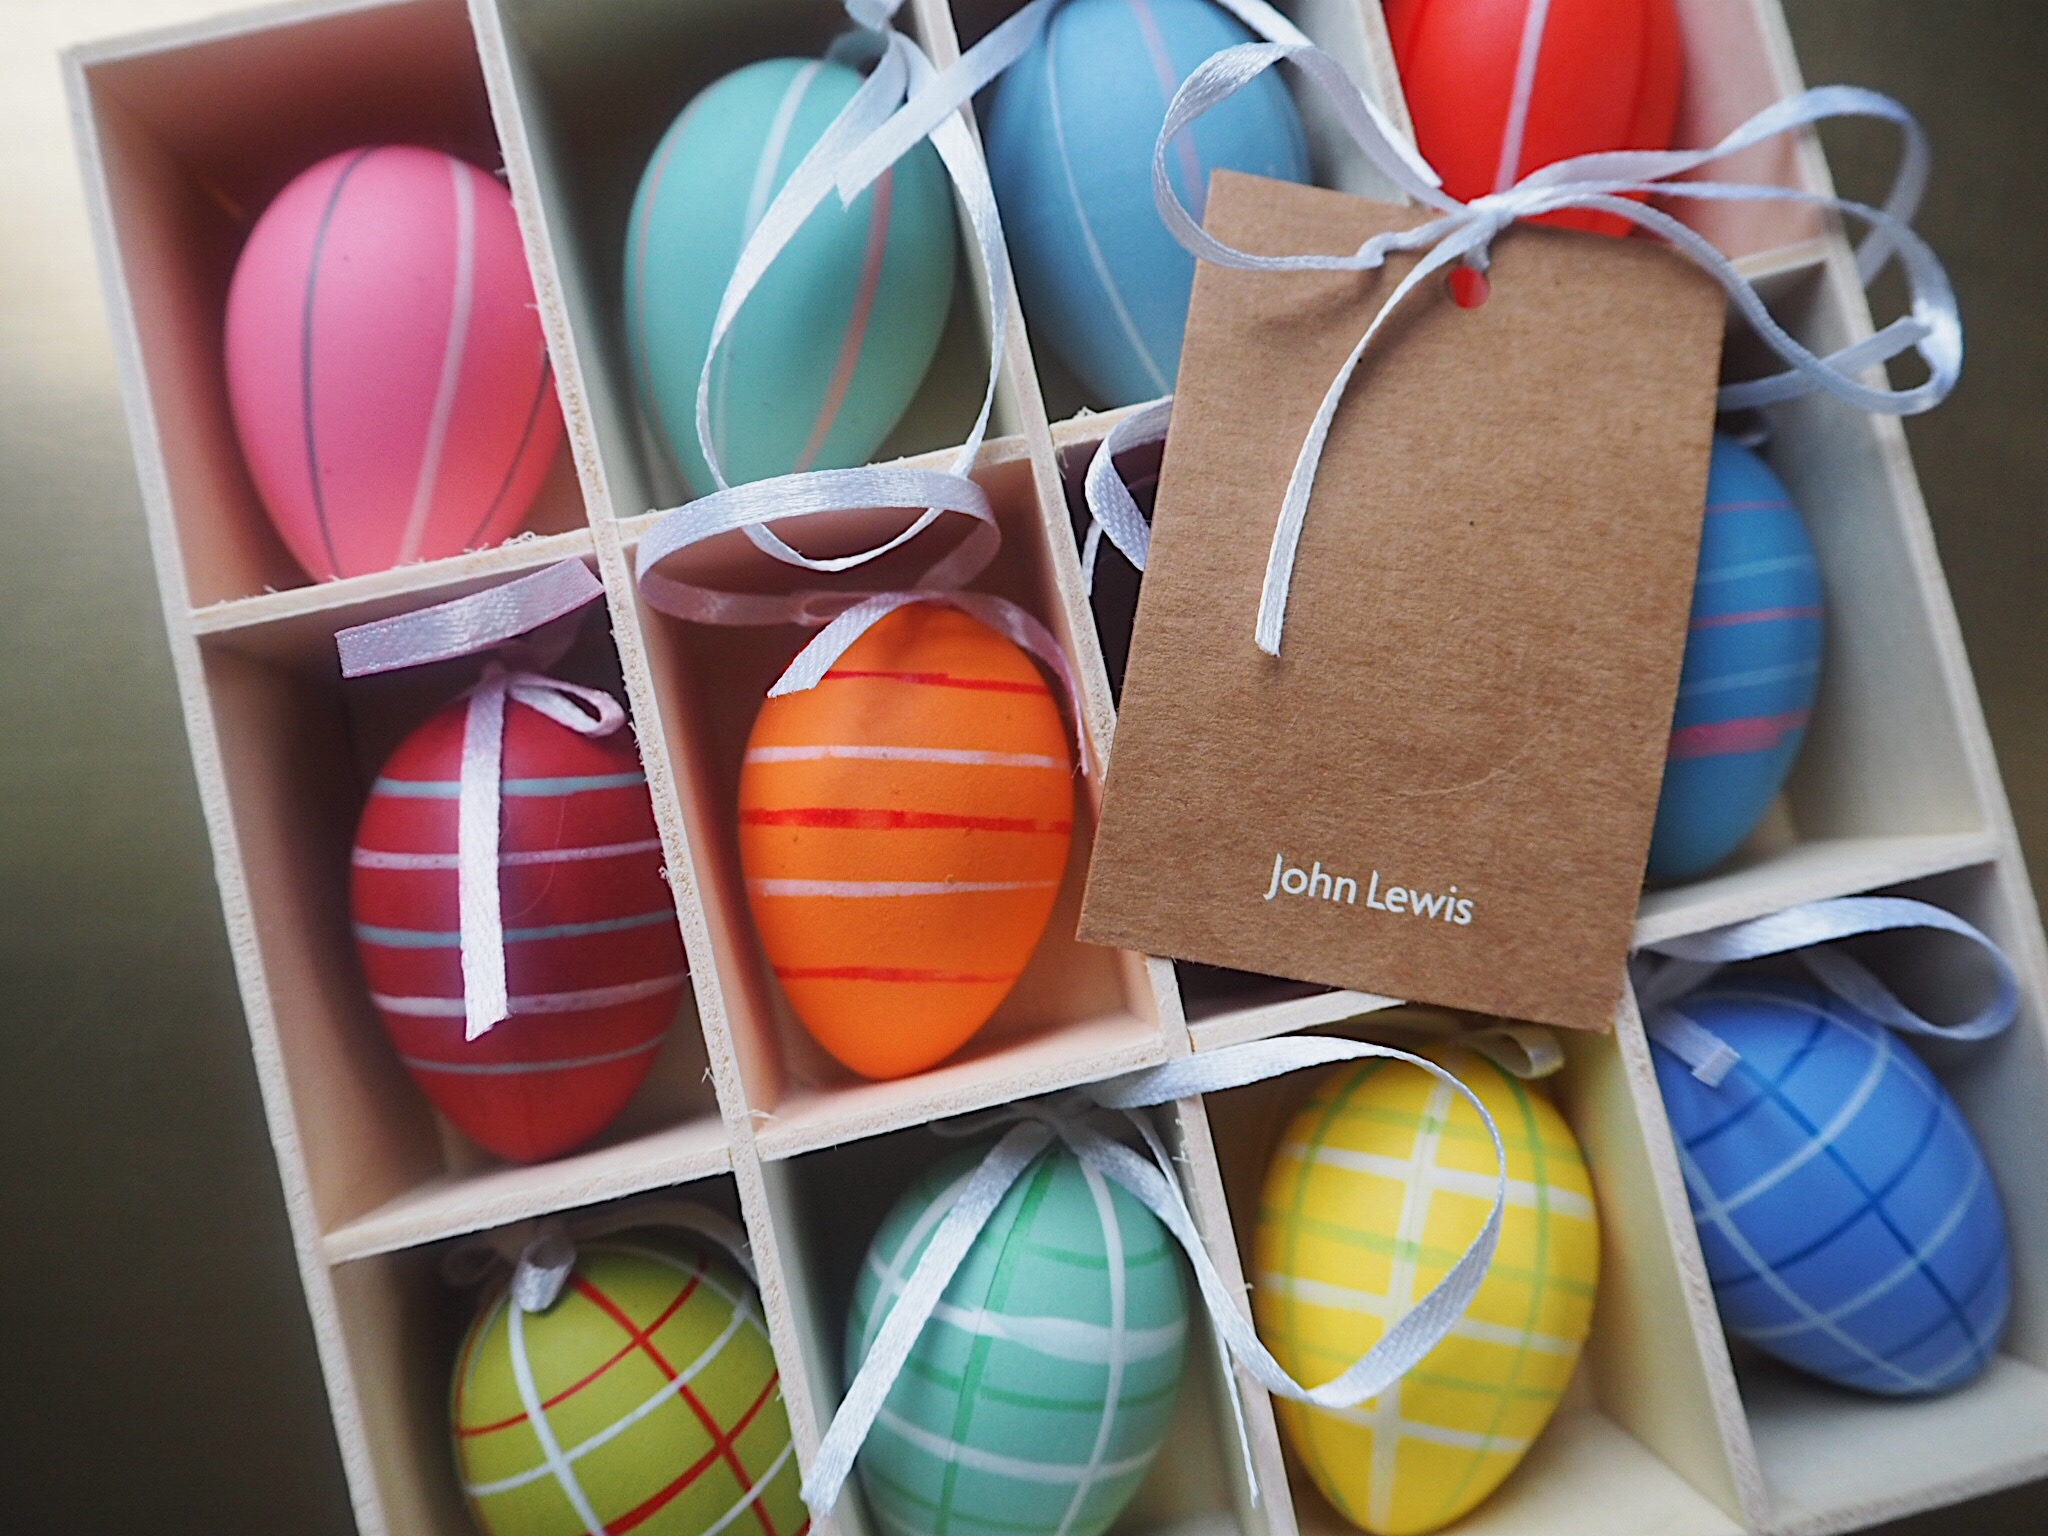 This beautiful box of 12 decorative eggs is only £8